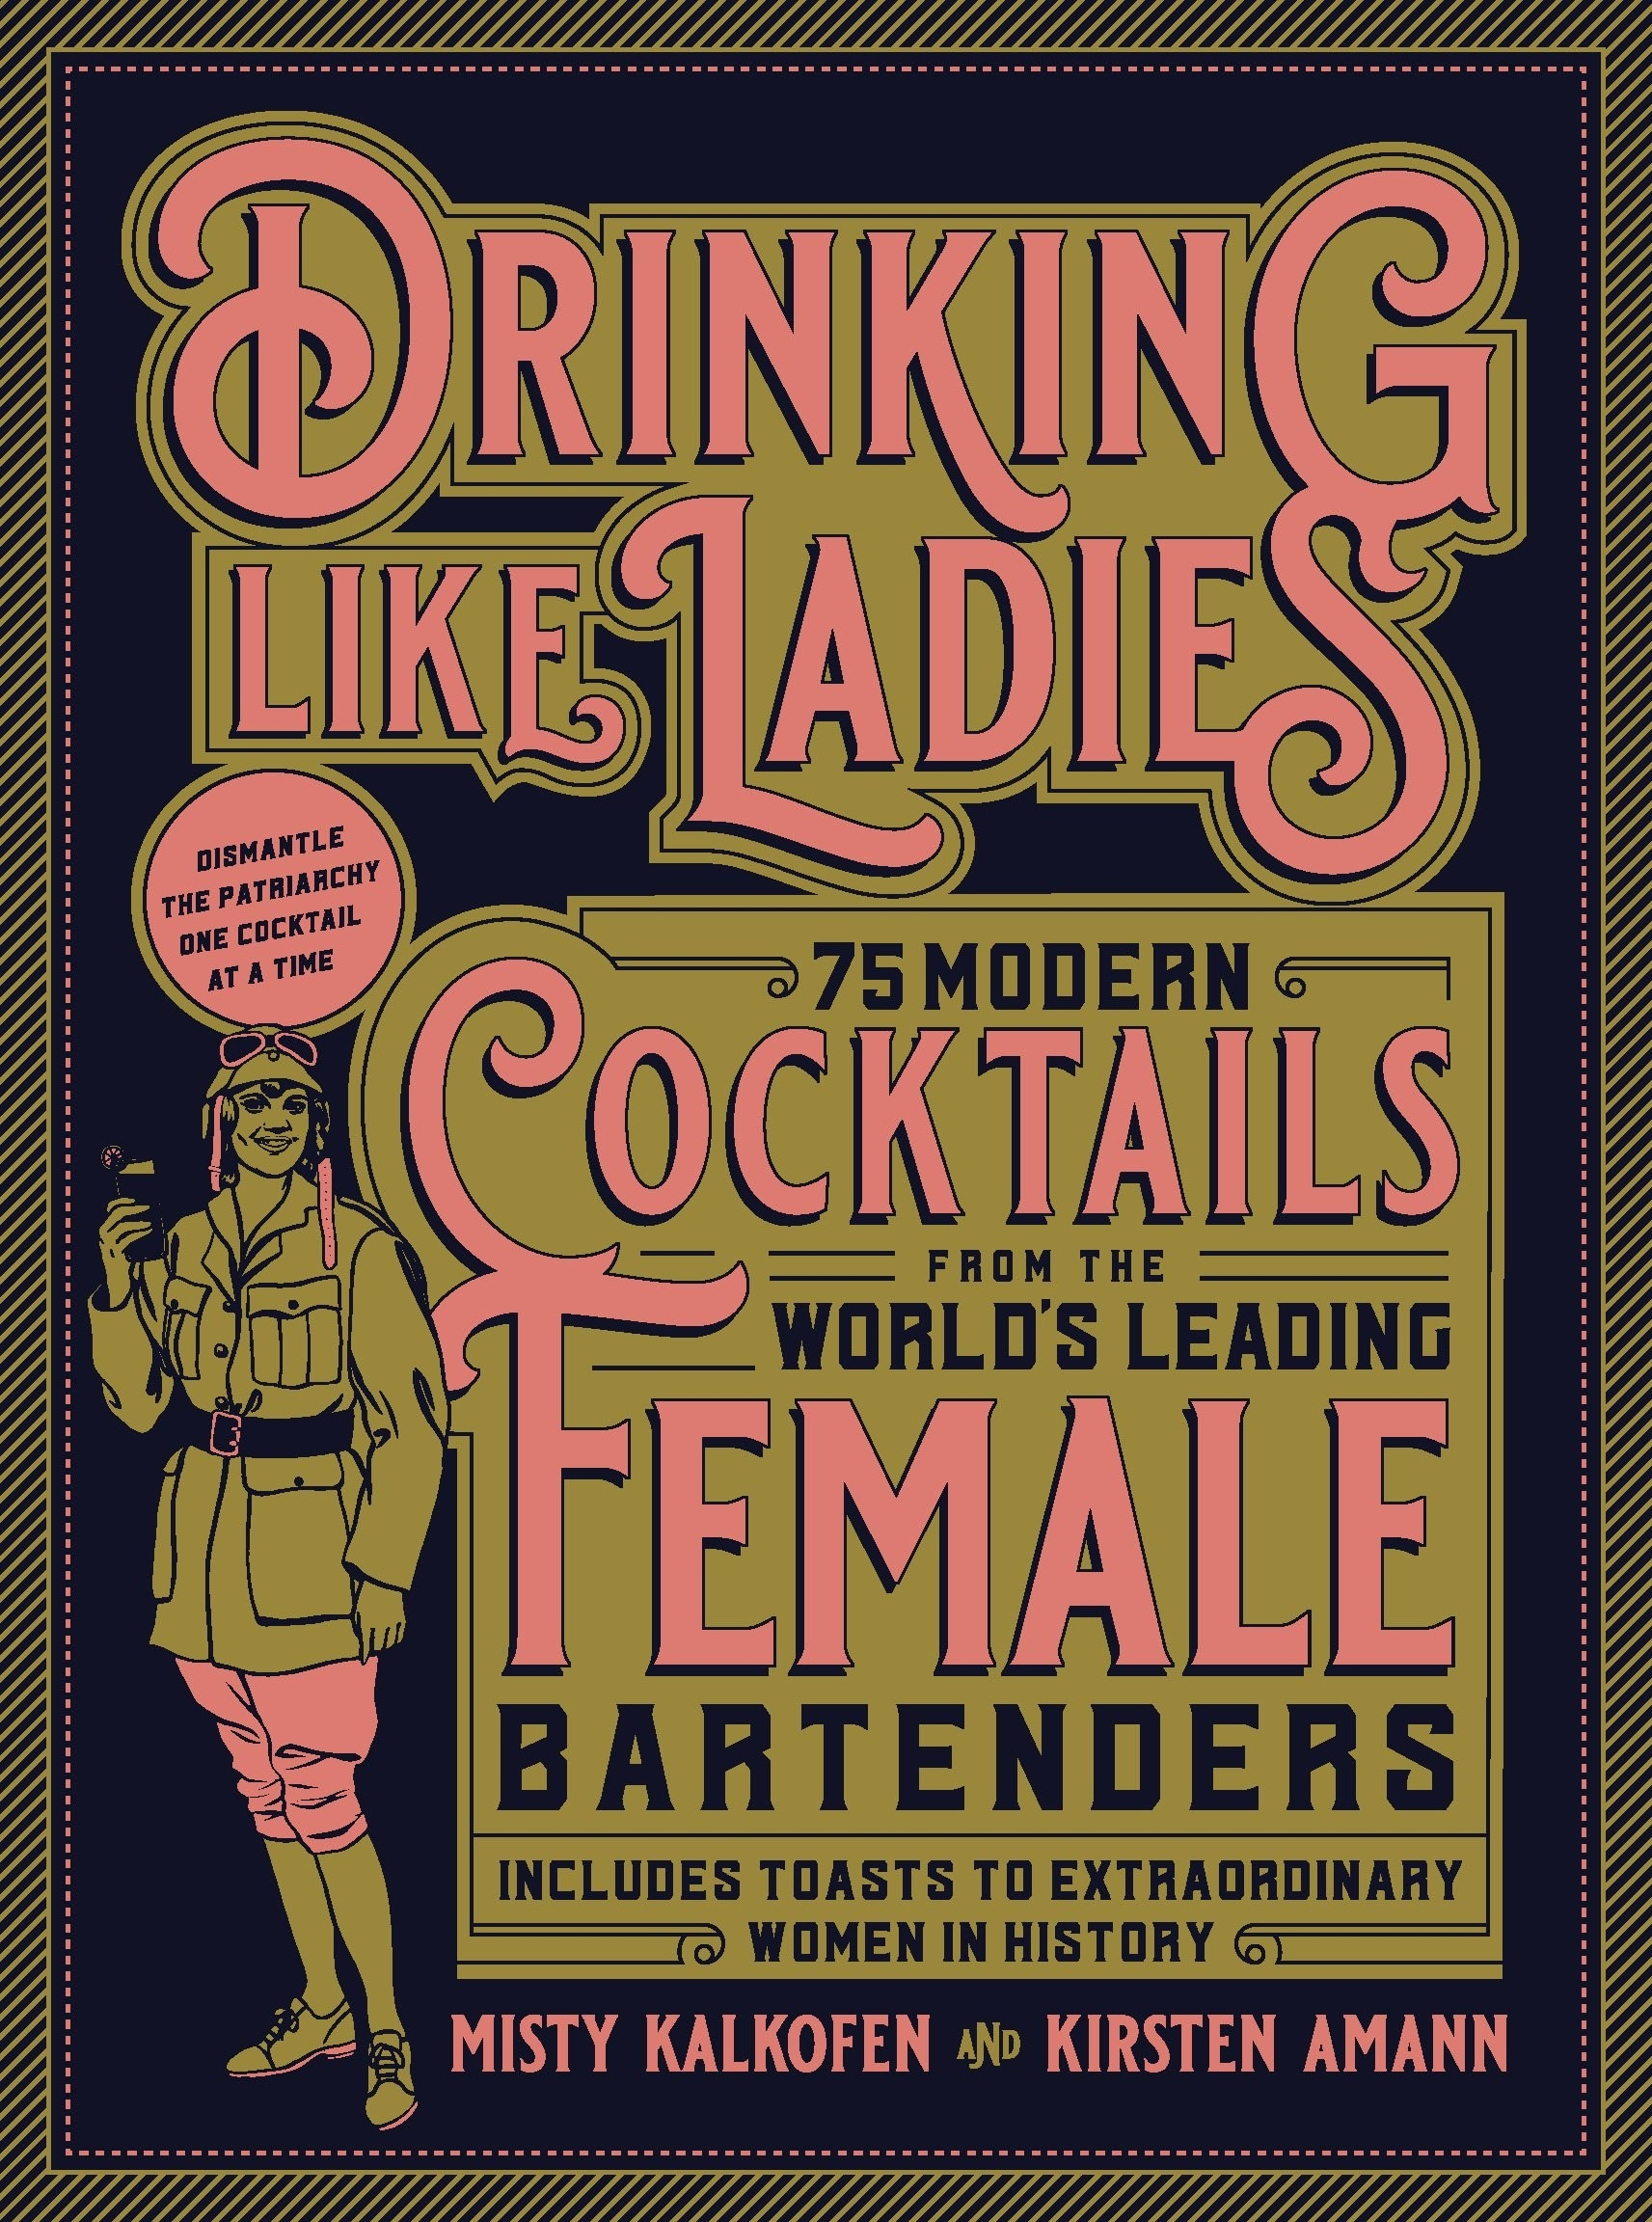 """The cover: """"75 modern cocktails from the world's leading femal bartender, includes toasts to extraordinary women in history"""""""